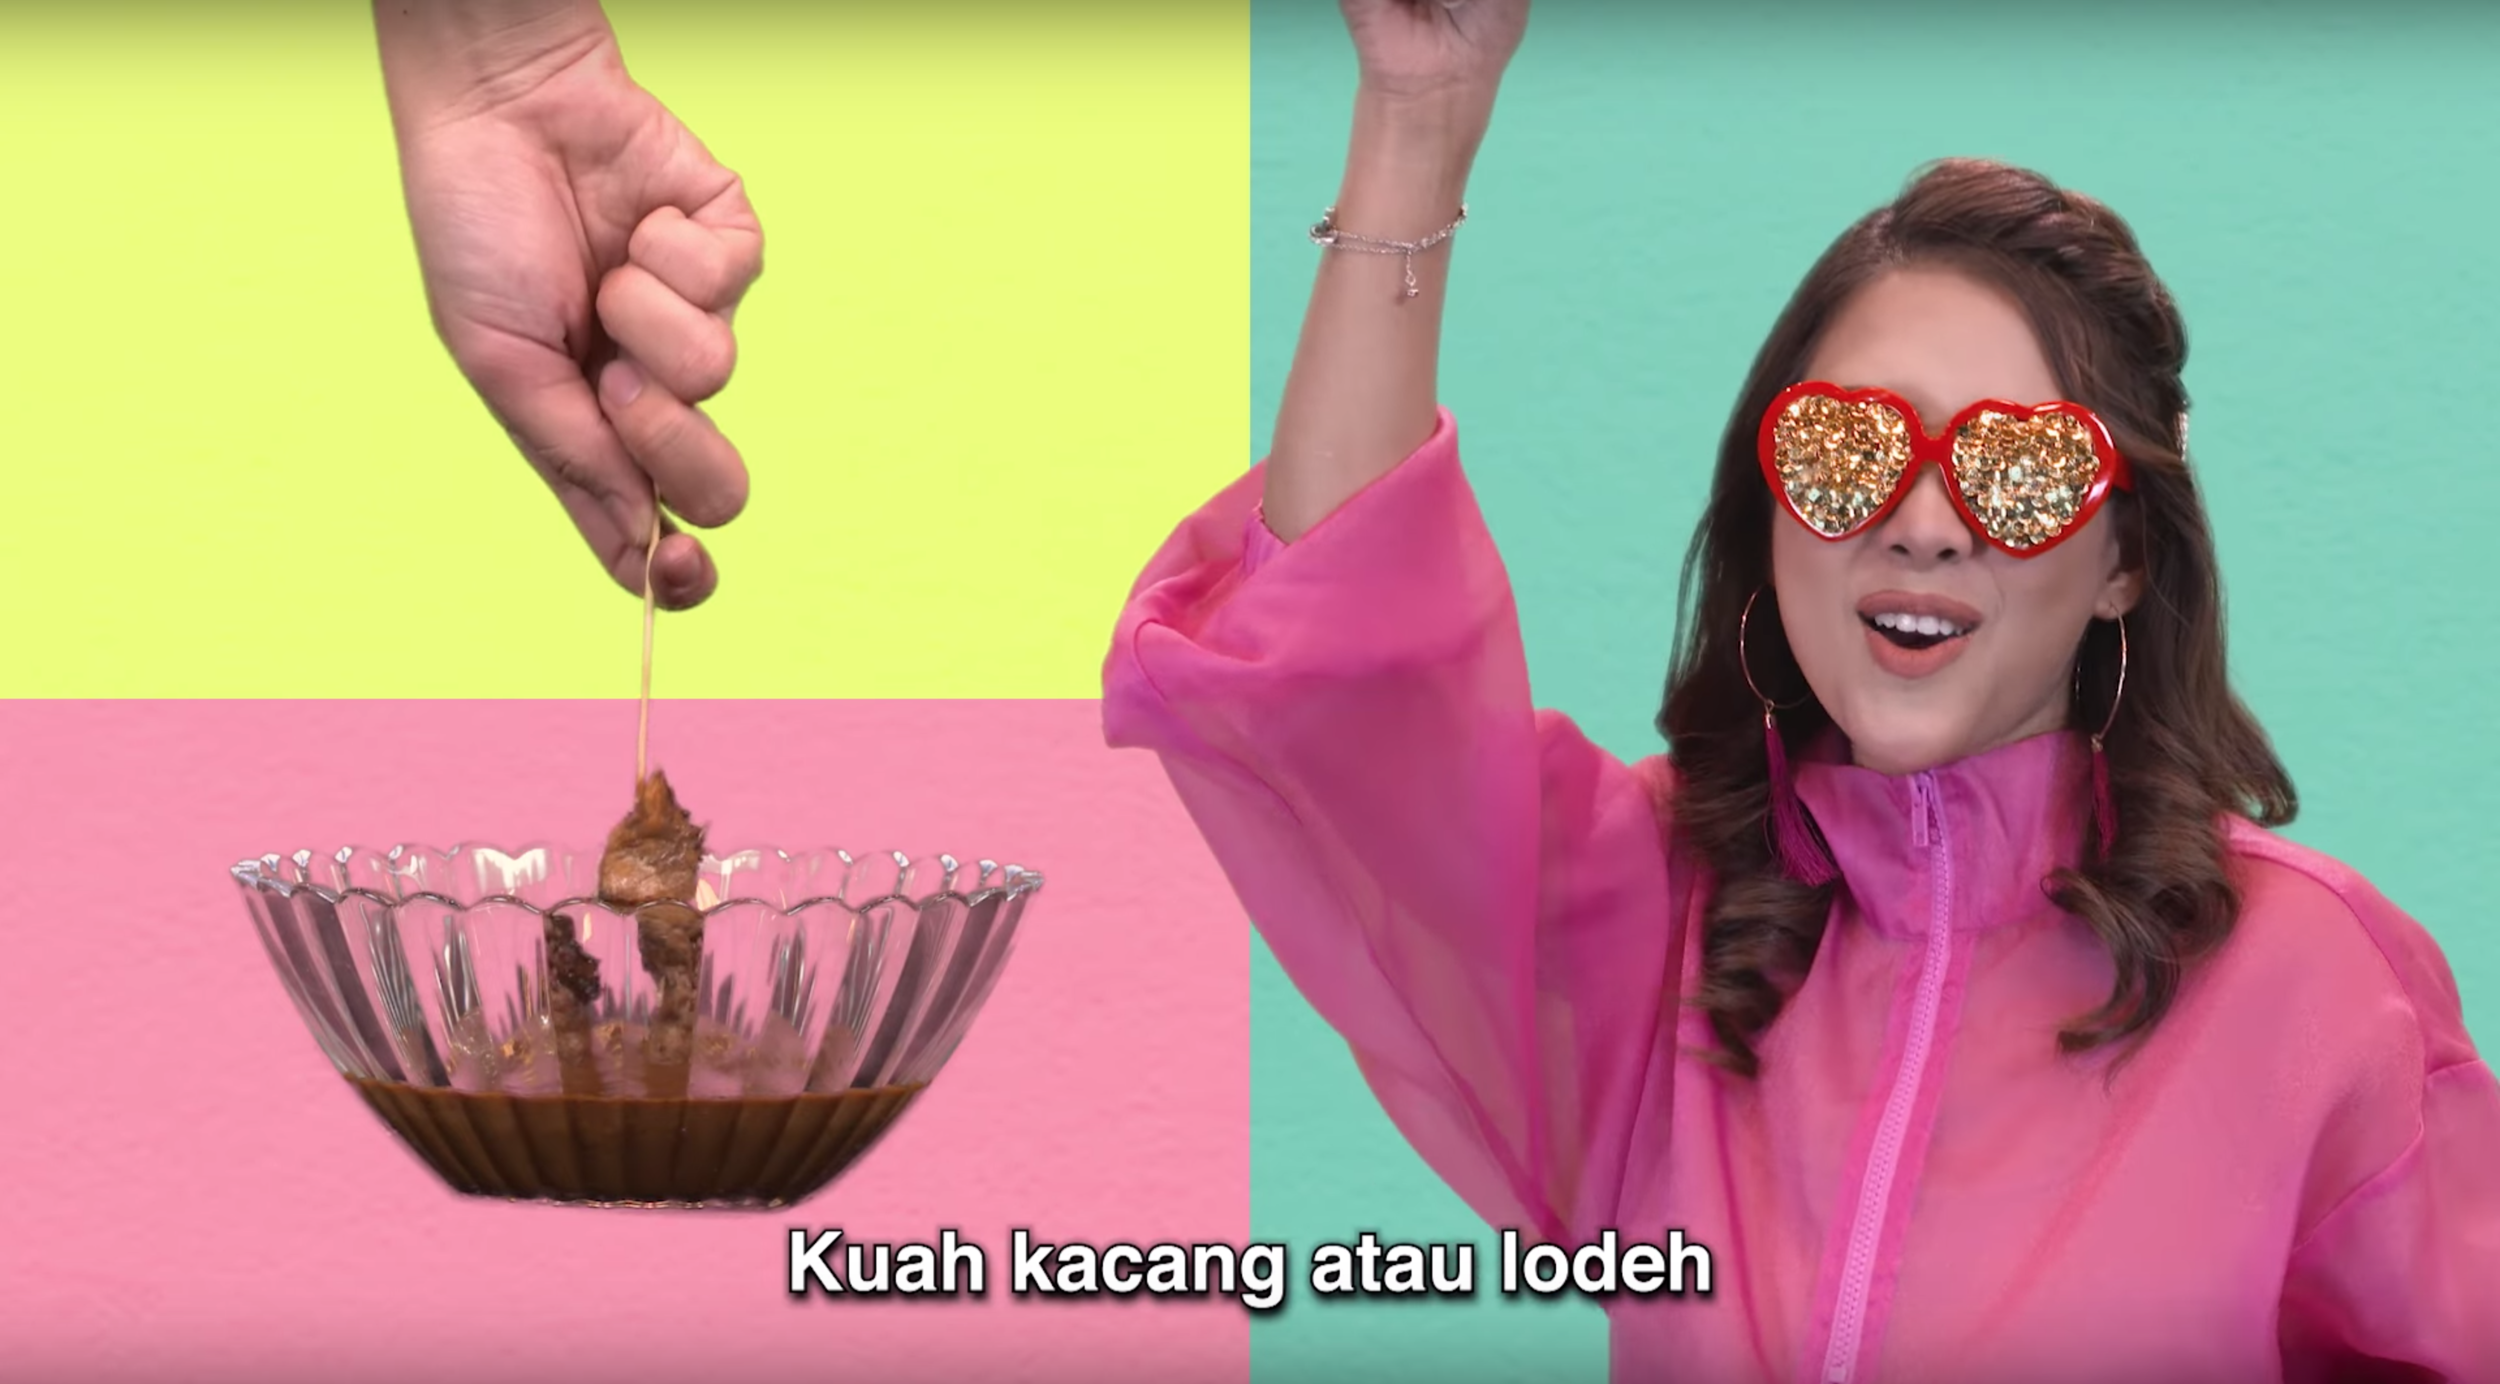 a kuah.png